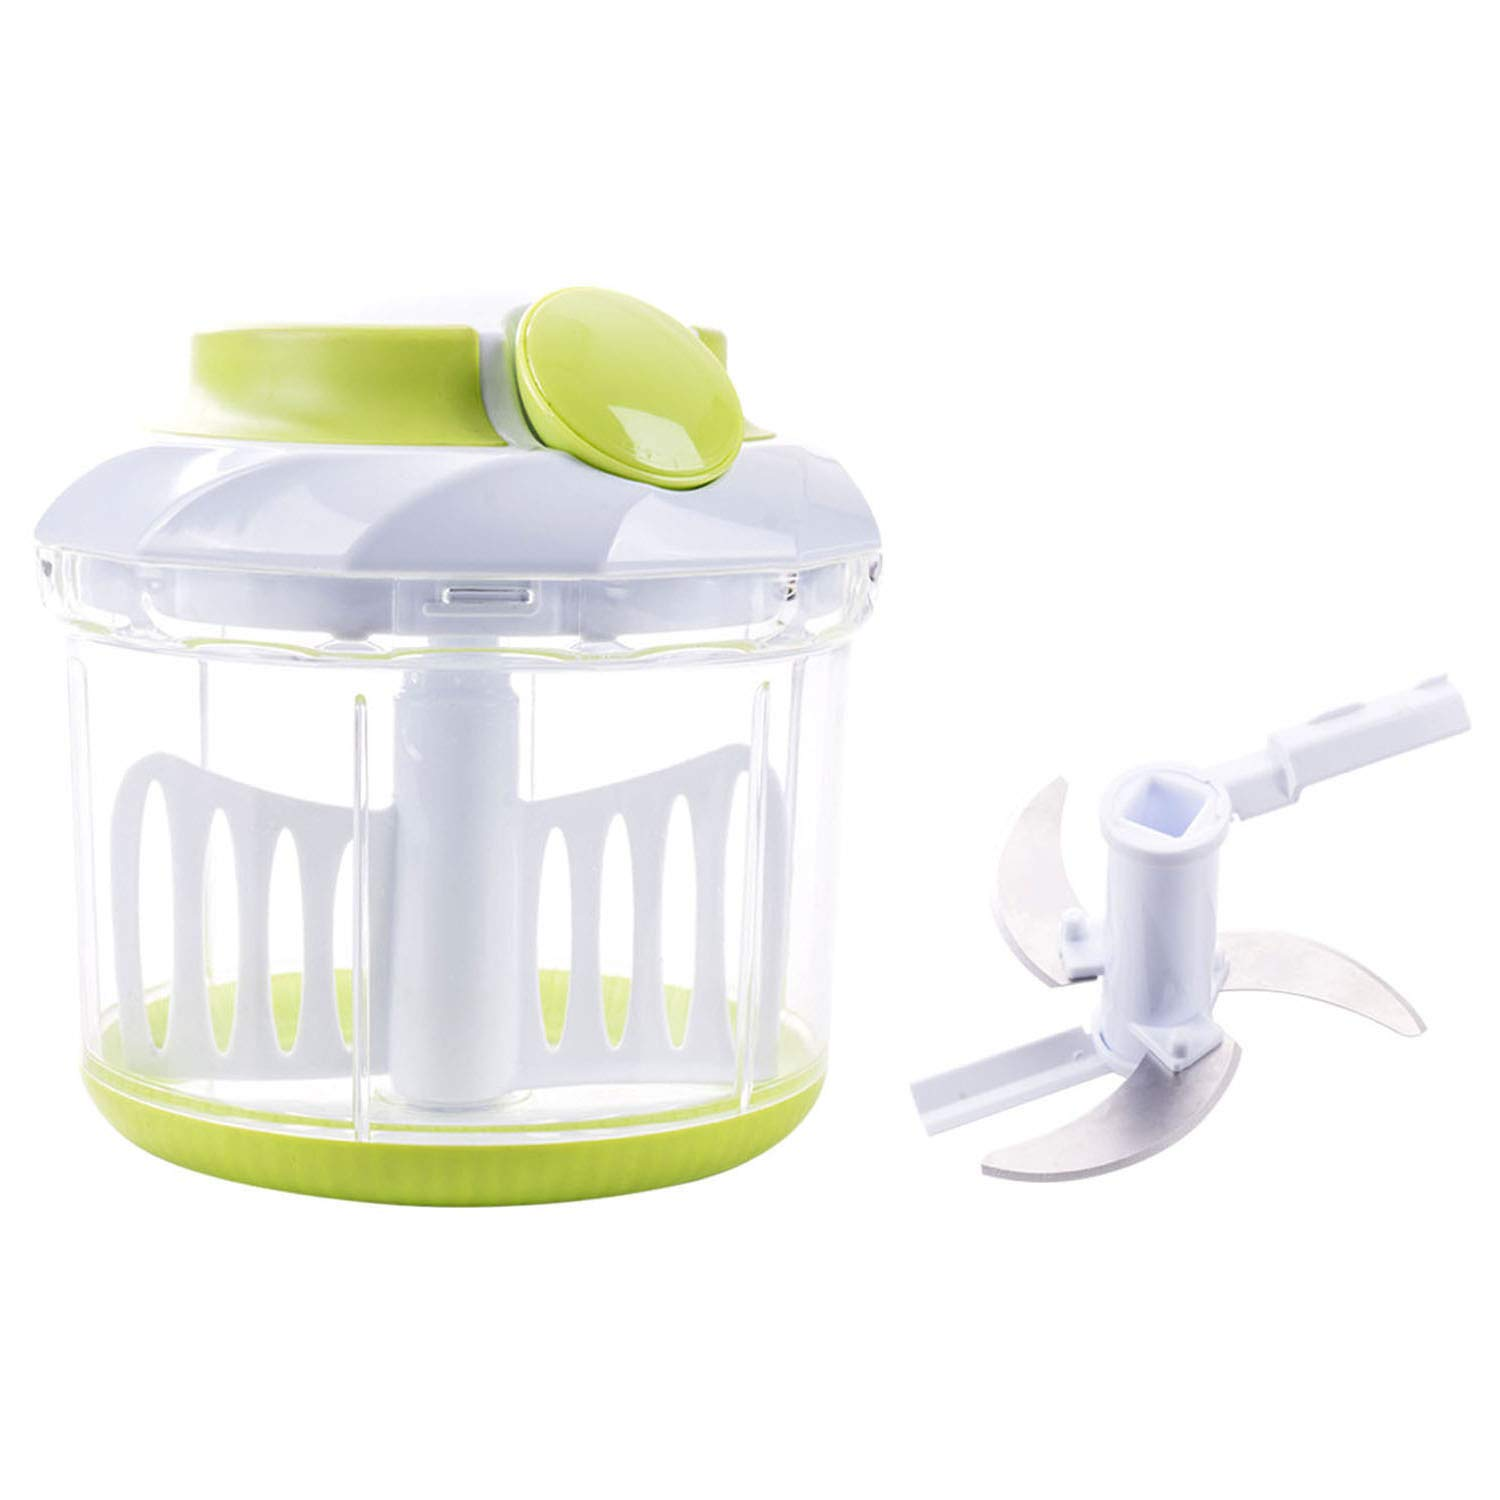 Smile mom Pull Food Chopper with Mincer Chopper Blades&Plastic Mixer Blender to Chop Vegetable Fruit Meat Nut Onion Carrot Cucumber Potato Egg for Salad-4 Cup Food Processor